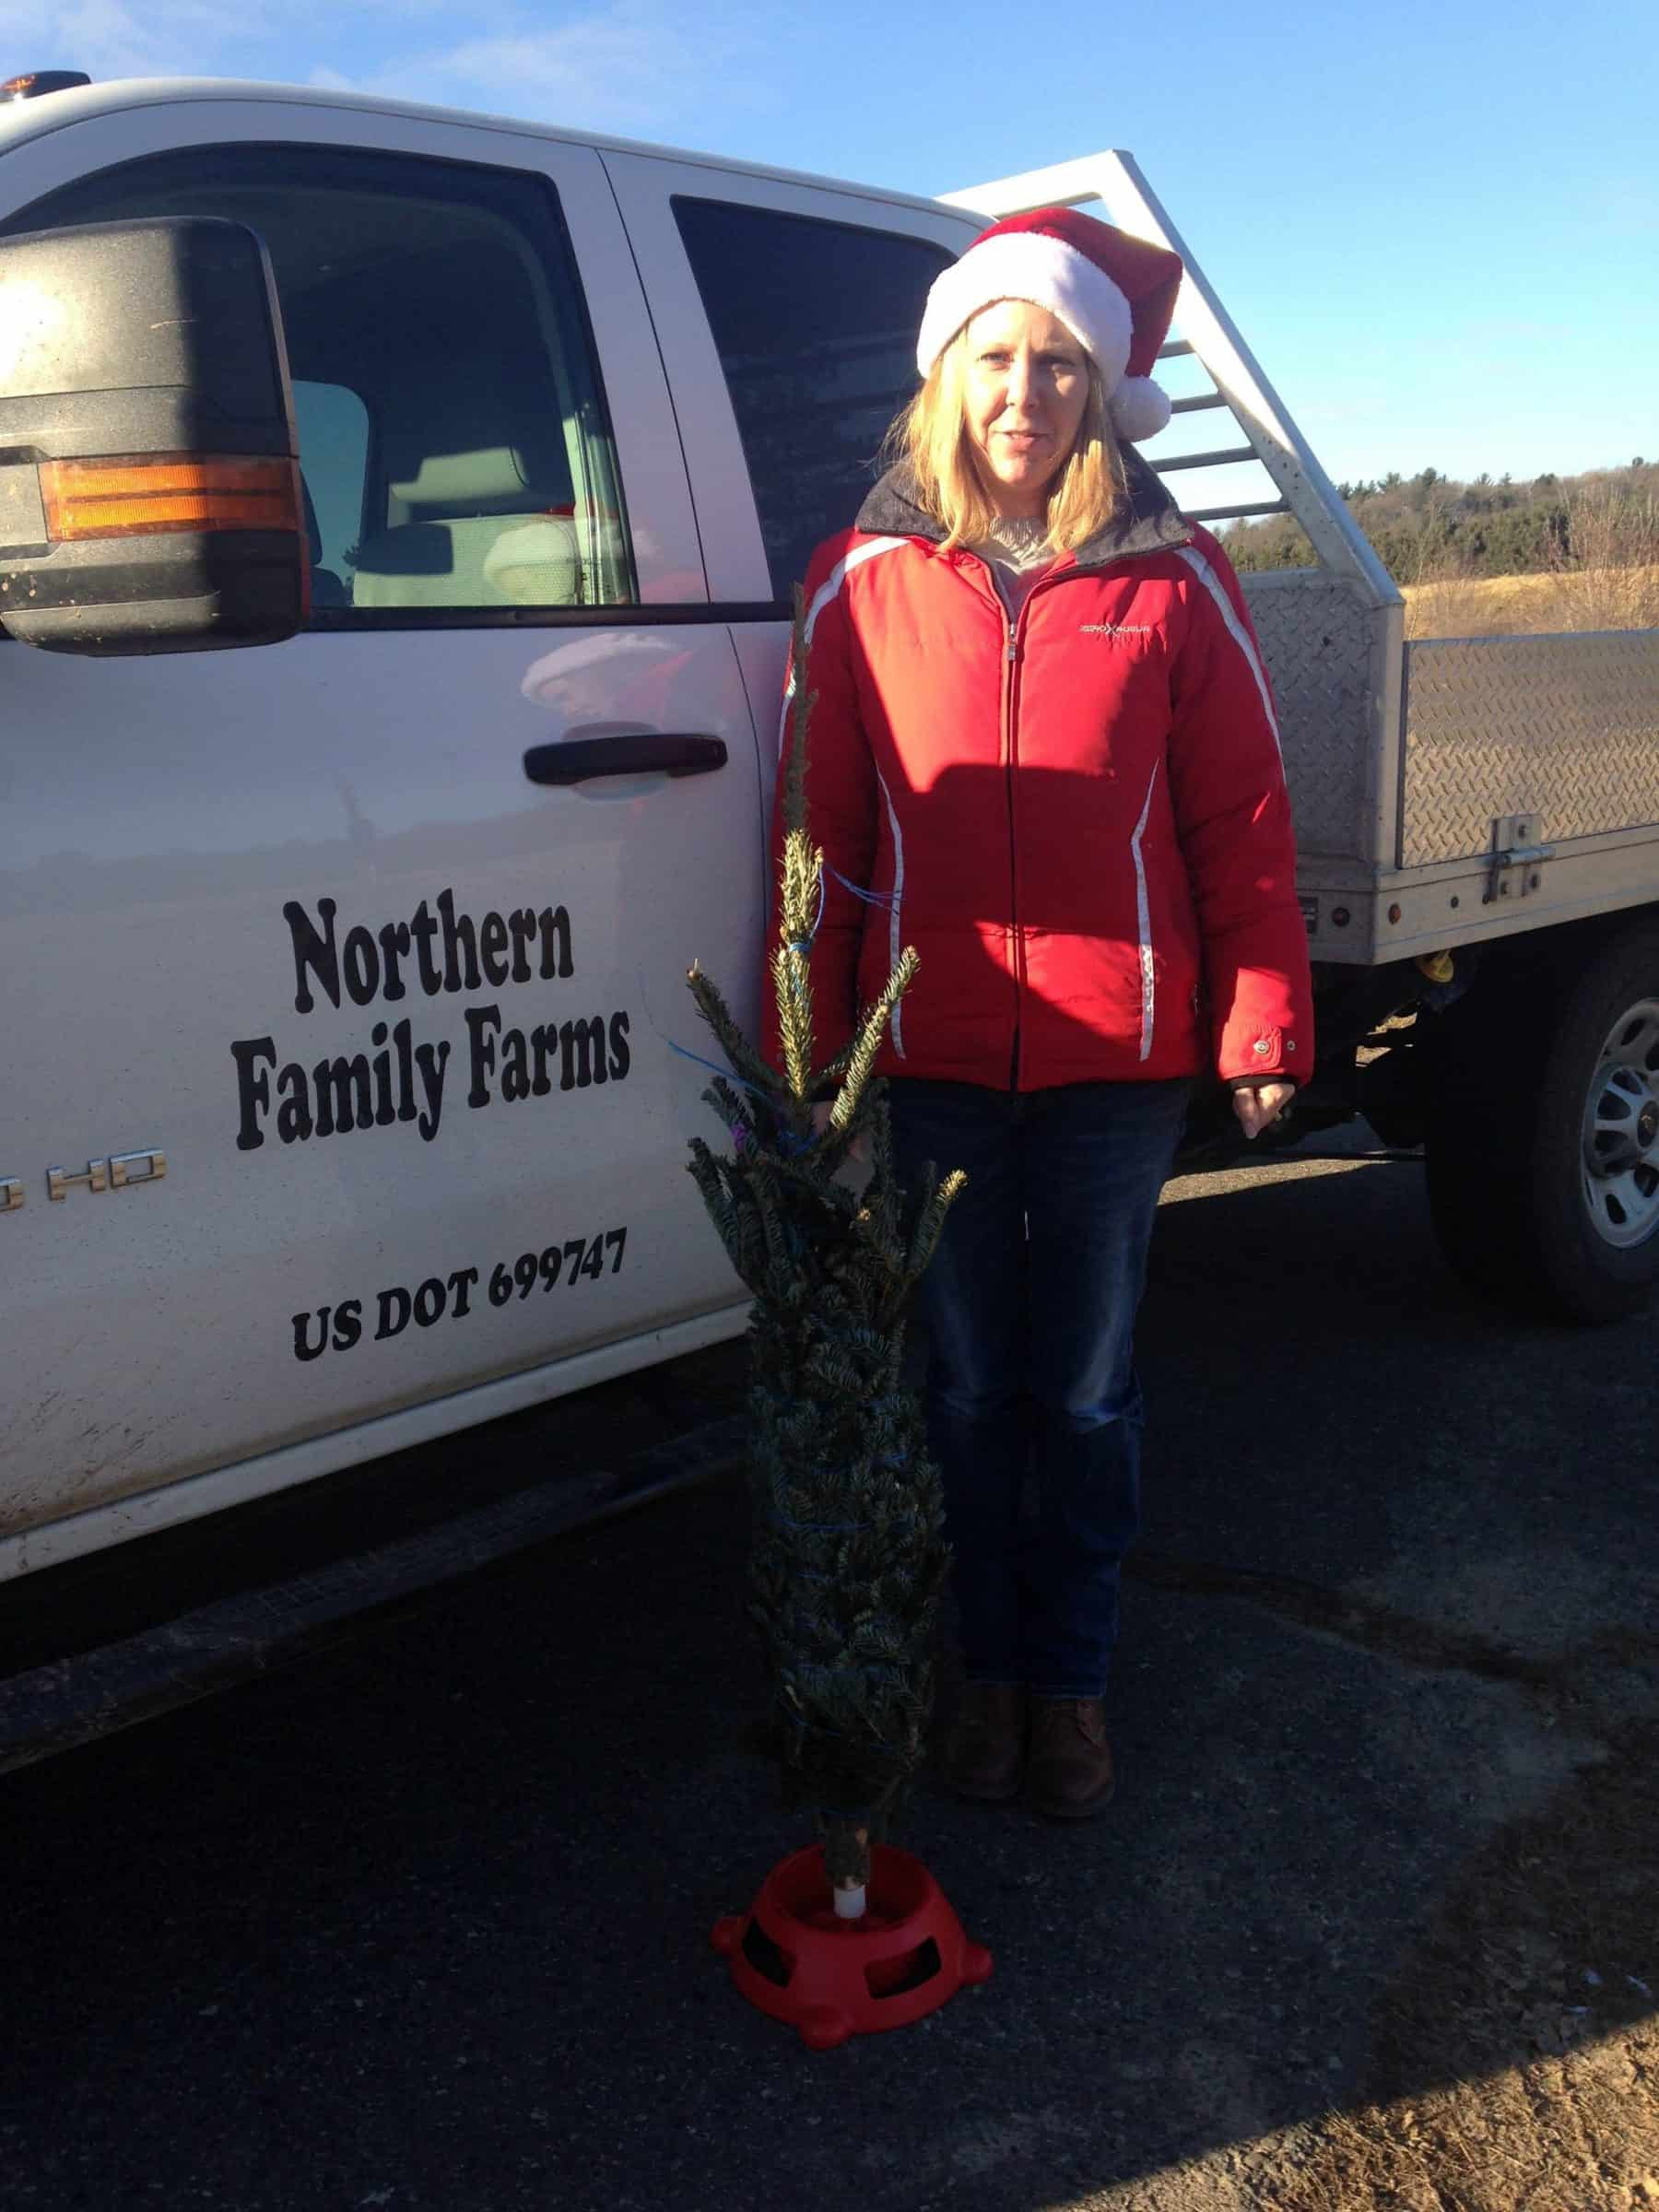 Northern Family Farms Meals on Wheels